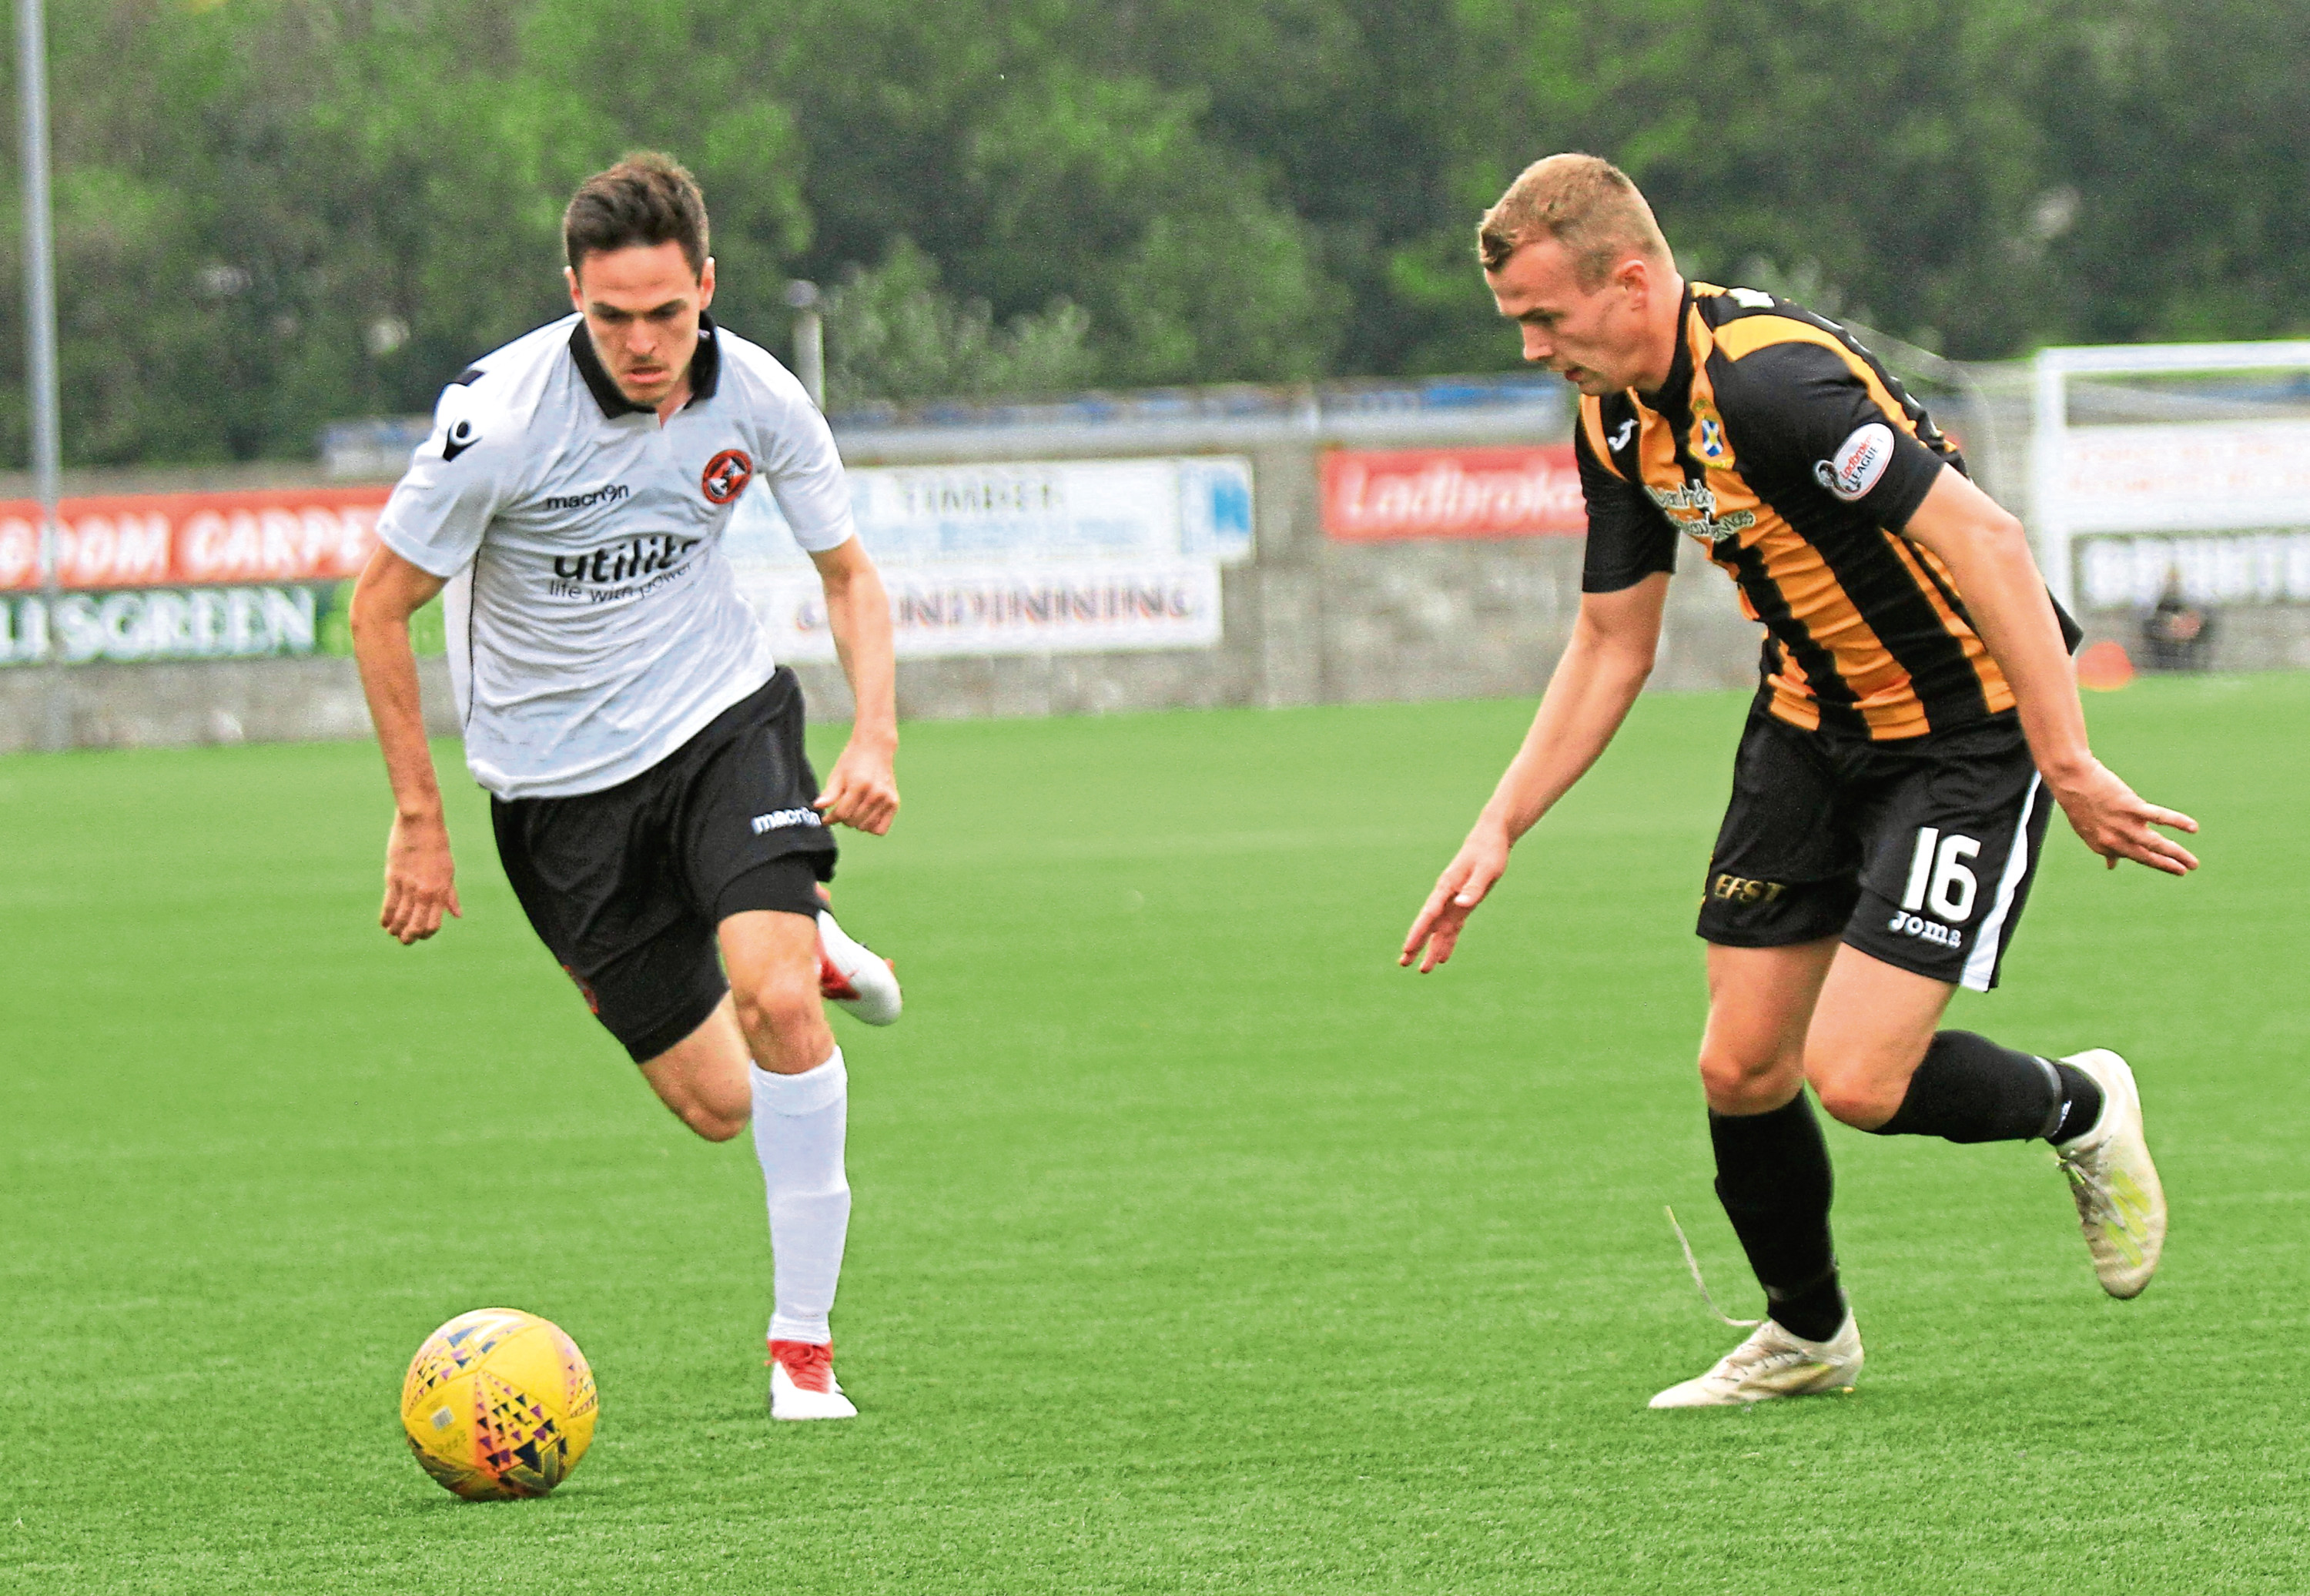 Peter Rundo pic Dundee United's Liam Smith in action against East Fife.